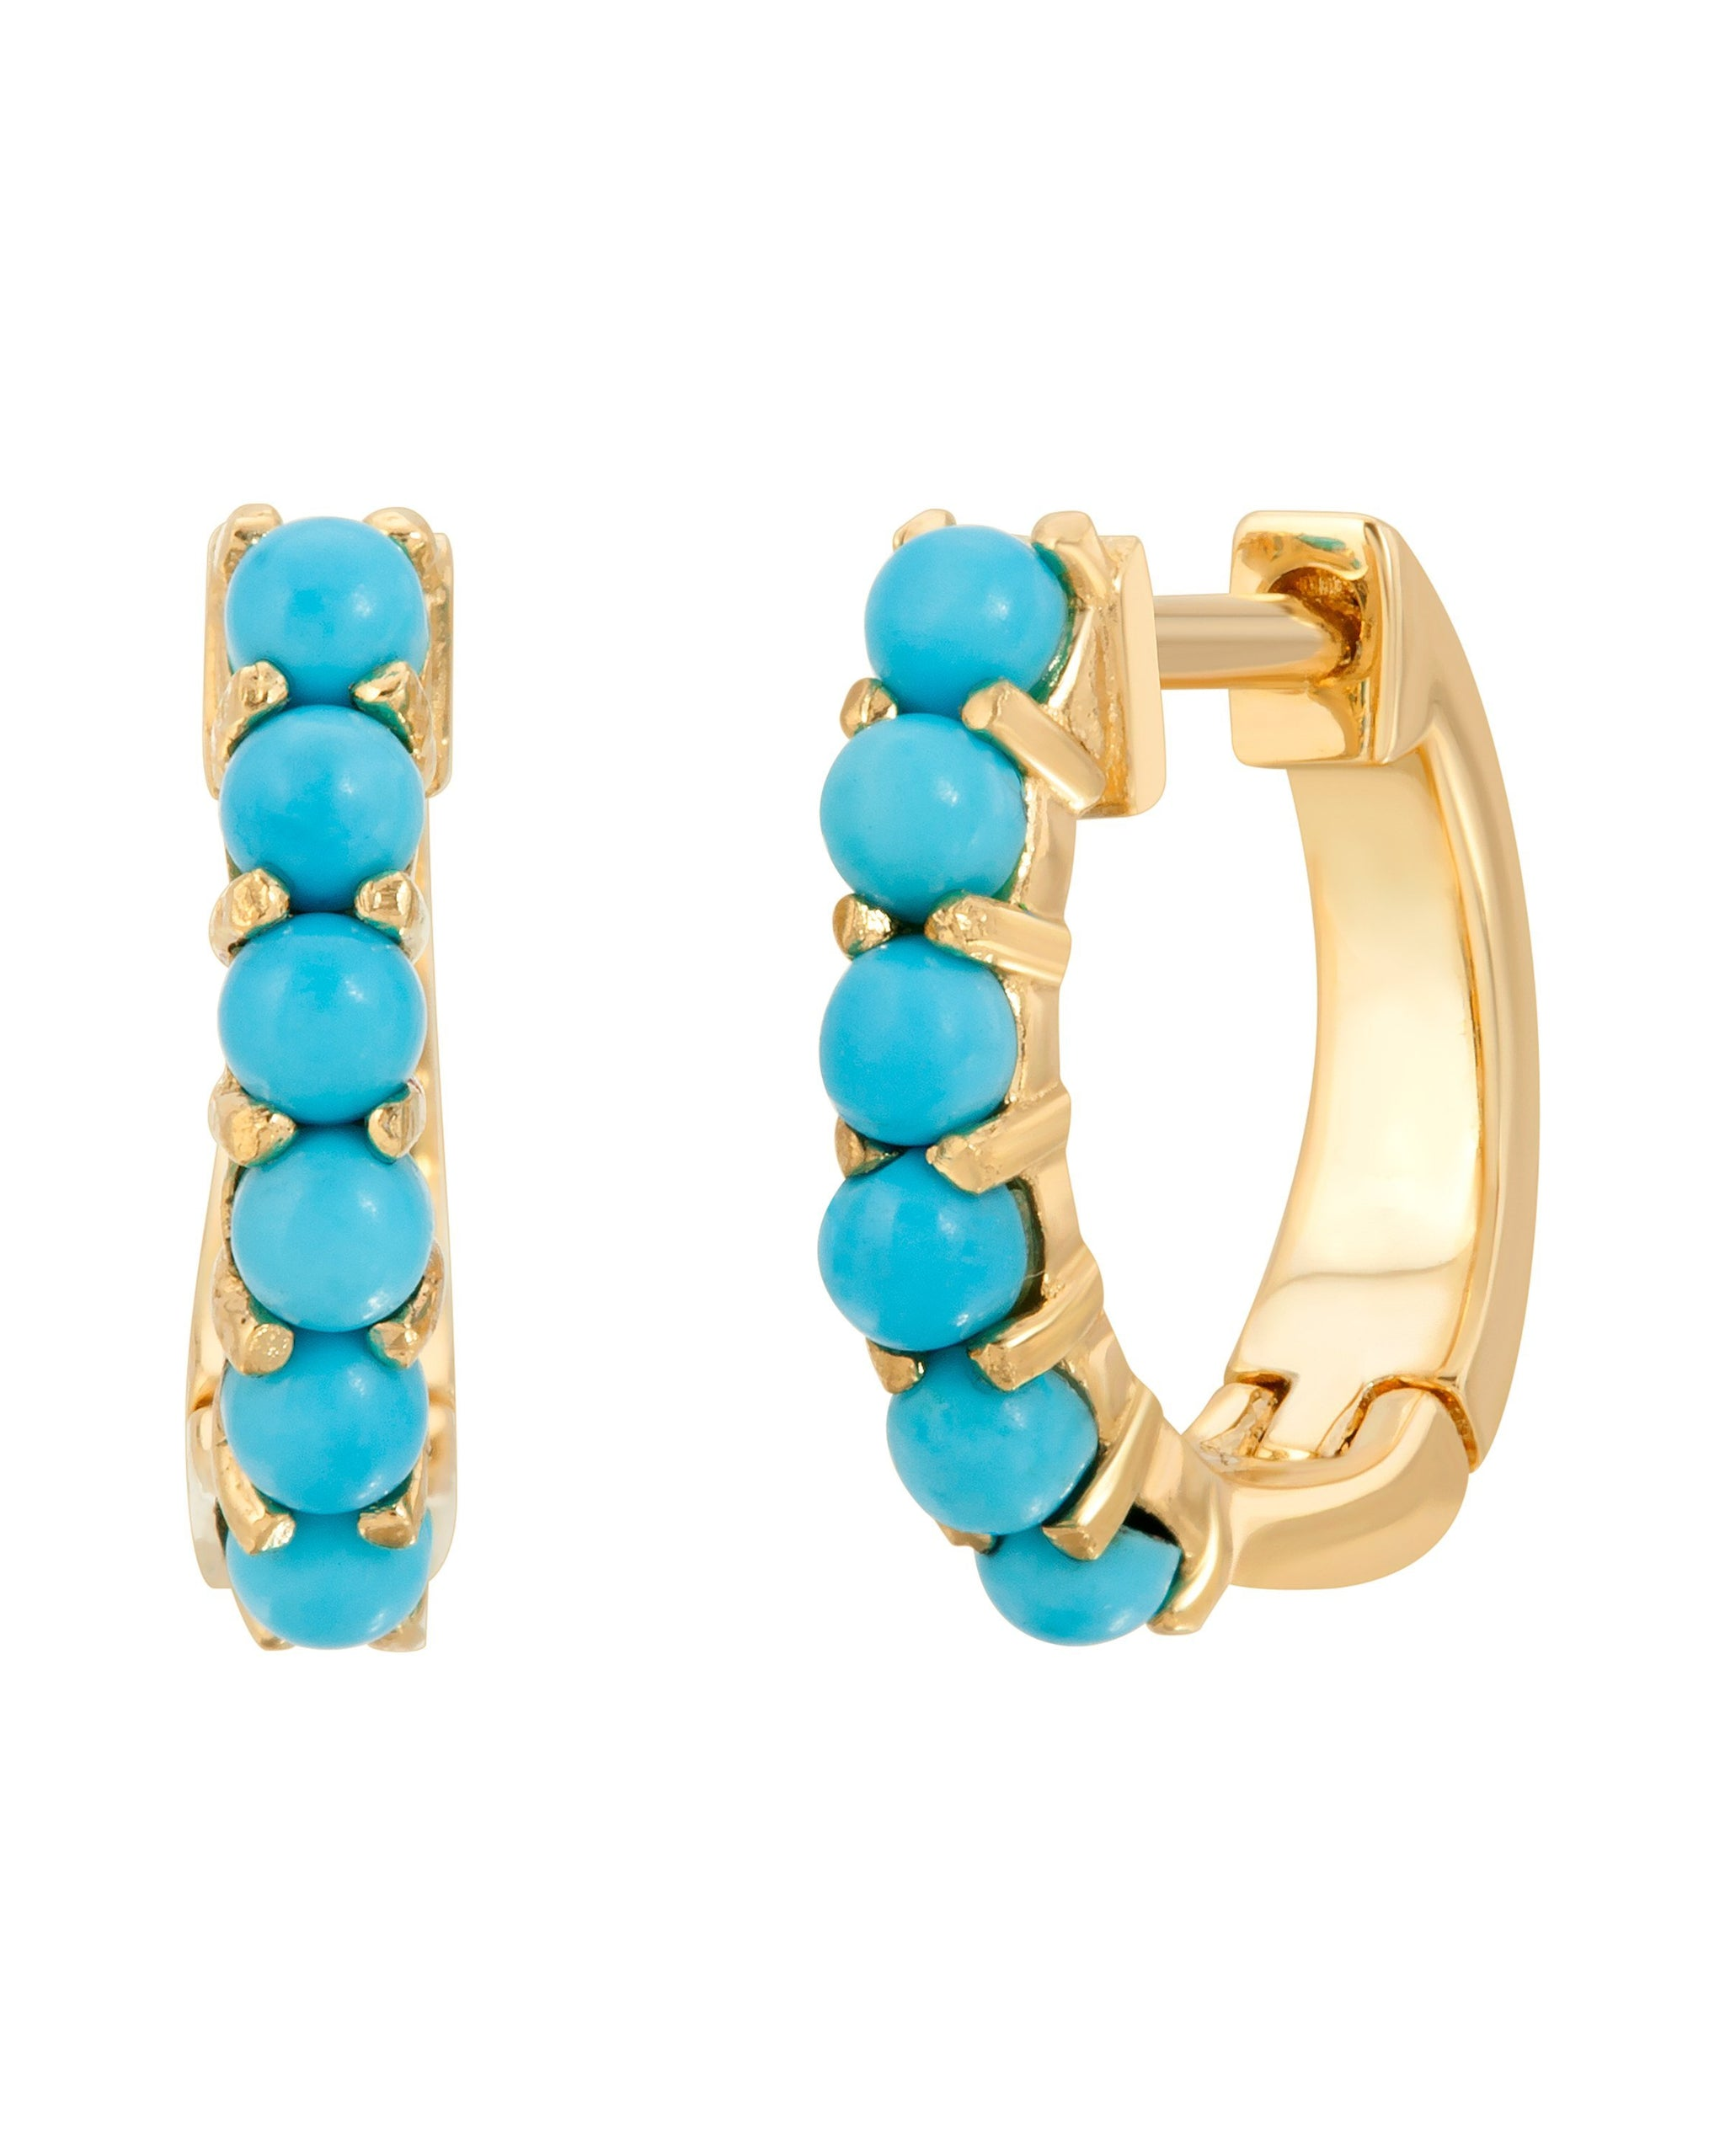 FINE EARRINGS | TURQUOISE + TOBACCO